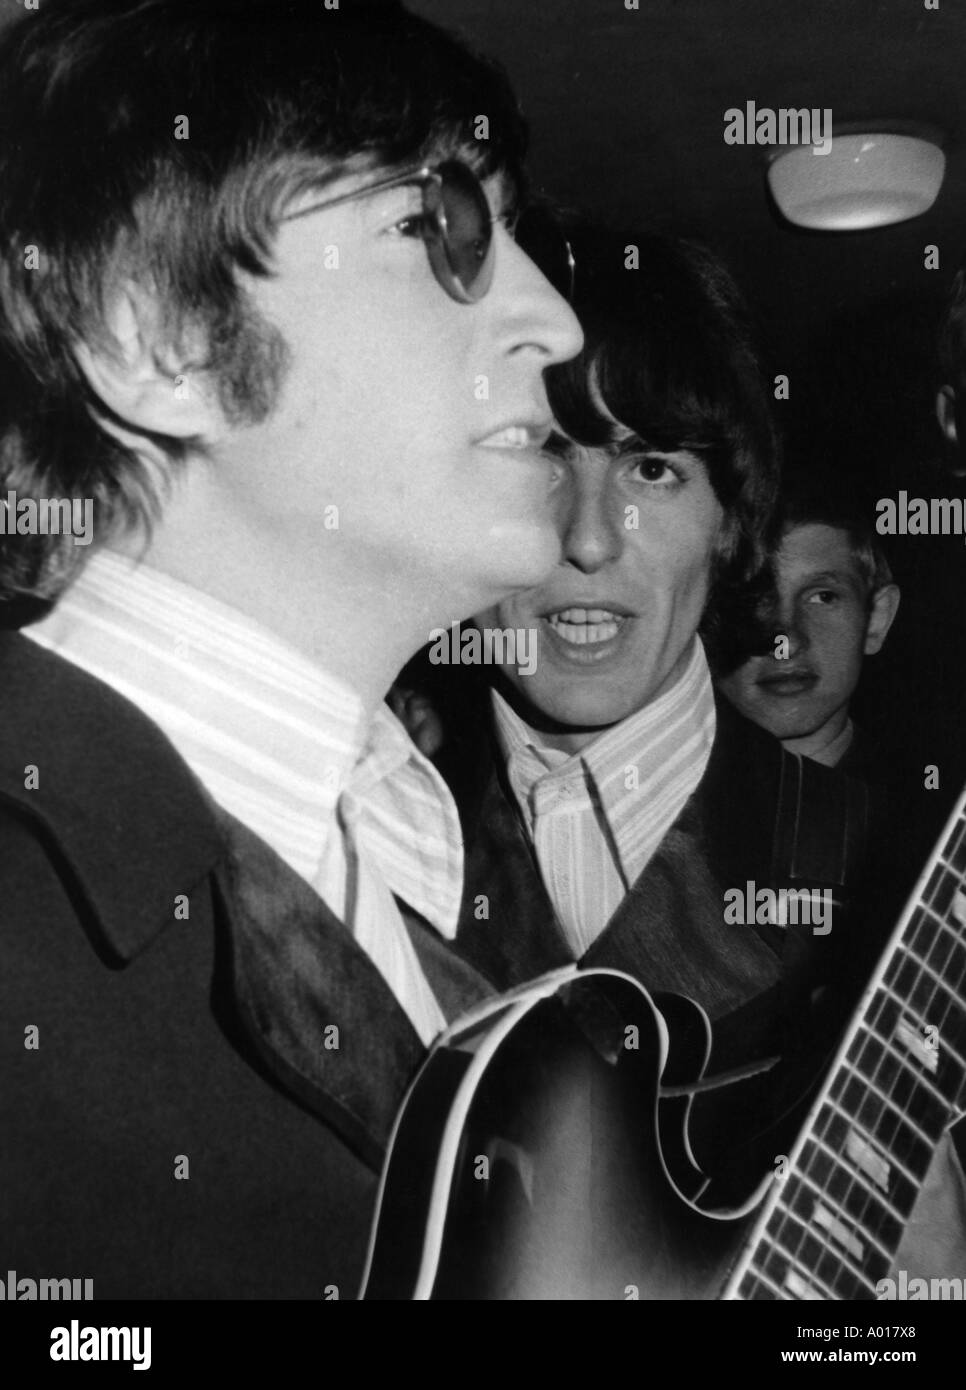 The Beatles, concert in Essen, Ruhr area, Gruga Hall, 1966, 1960s, the sixties, England, London, Great Britain, British pop band, music, musician, group, pop music, singers, John Lennon, guitar, George Harrison, b&w, black and white, black & white photogr - Stock Image